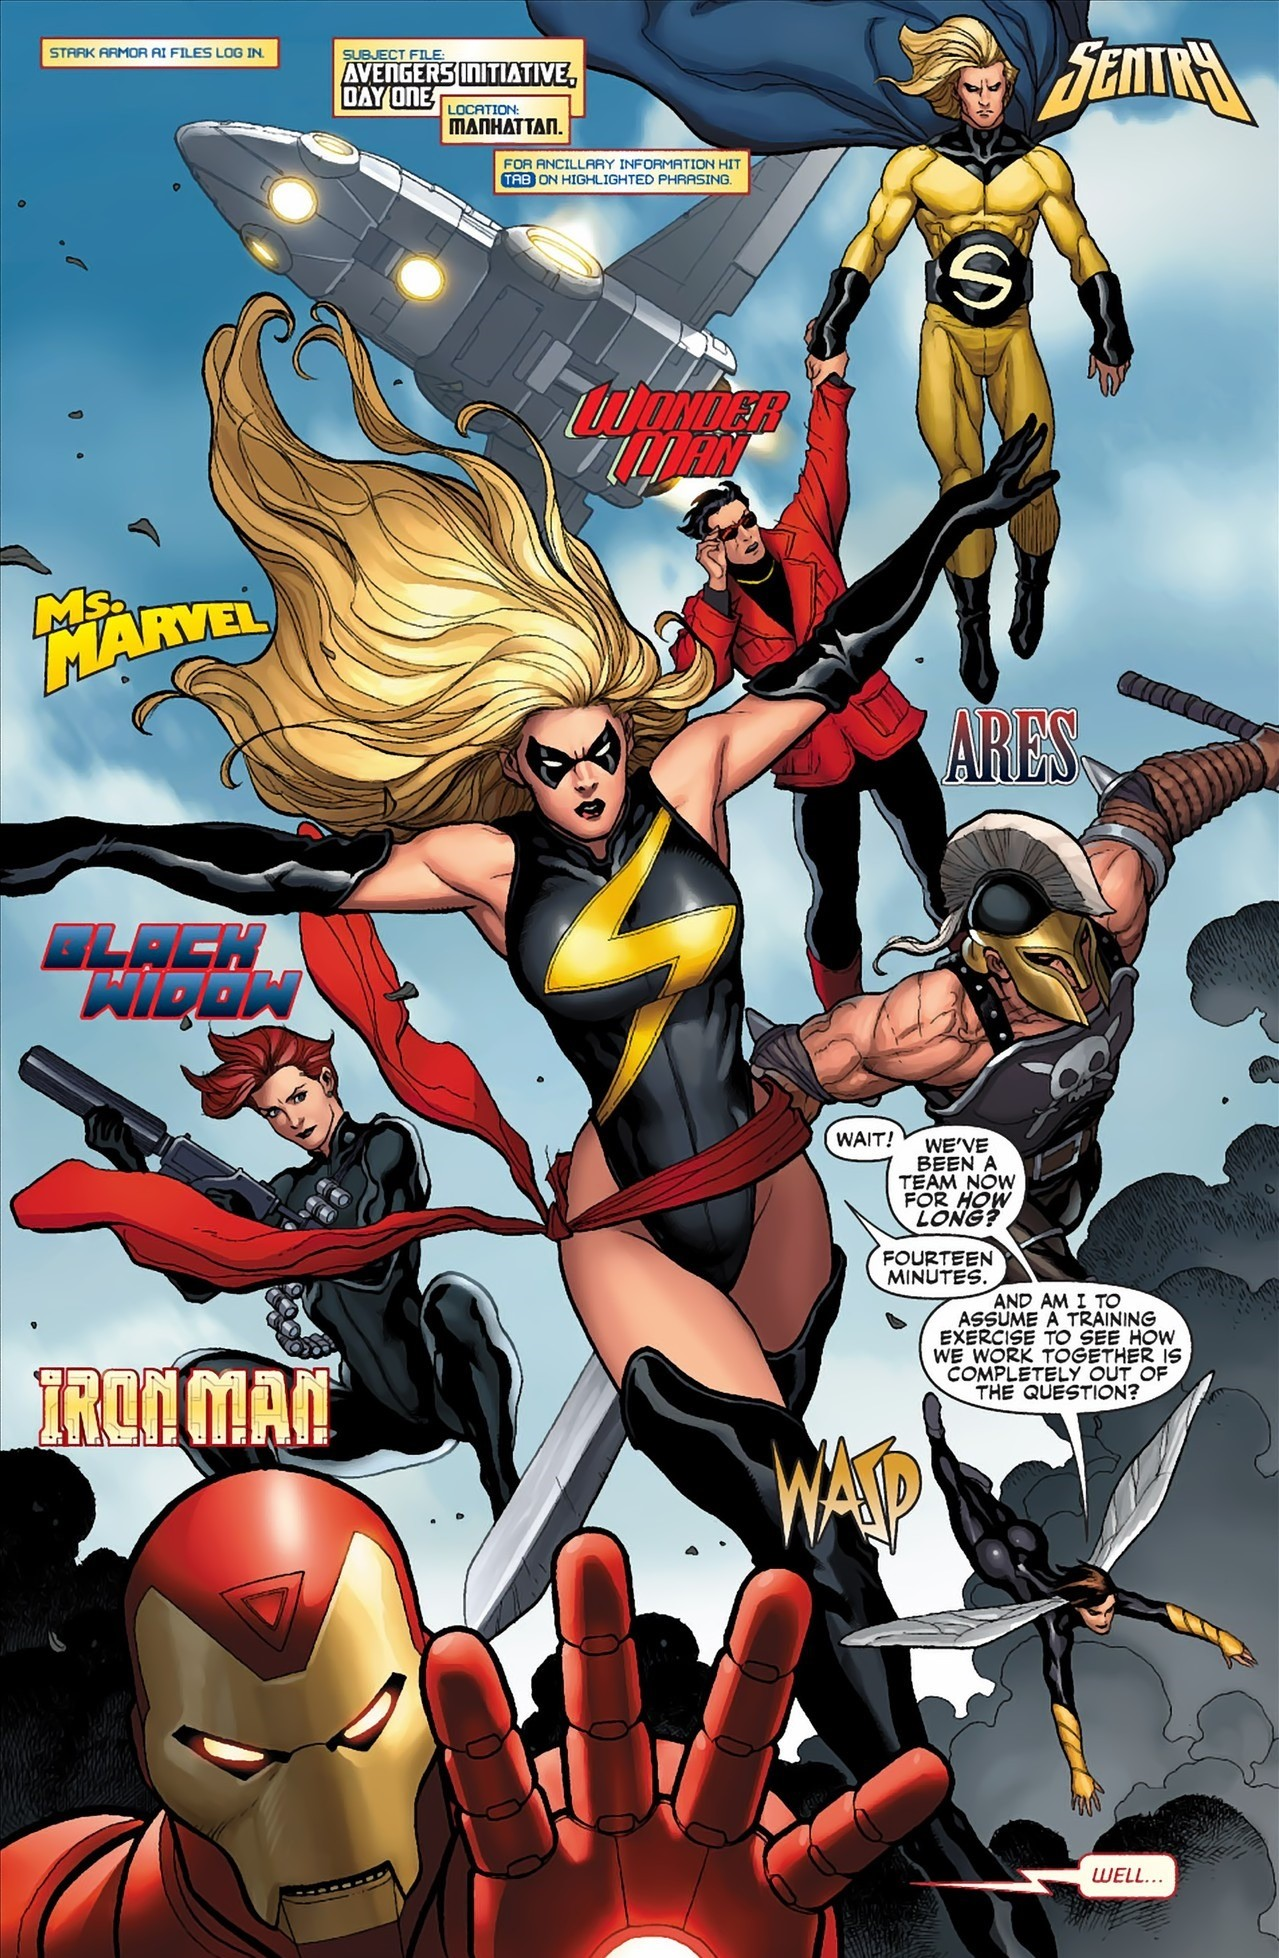 Mighty Avengers (Initiative) (Earth-616)/Gallery